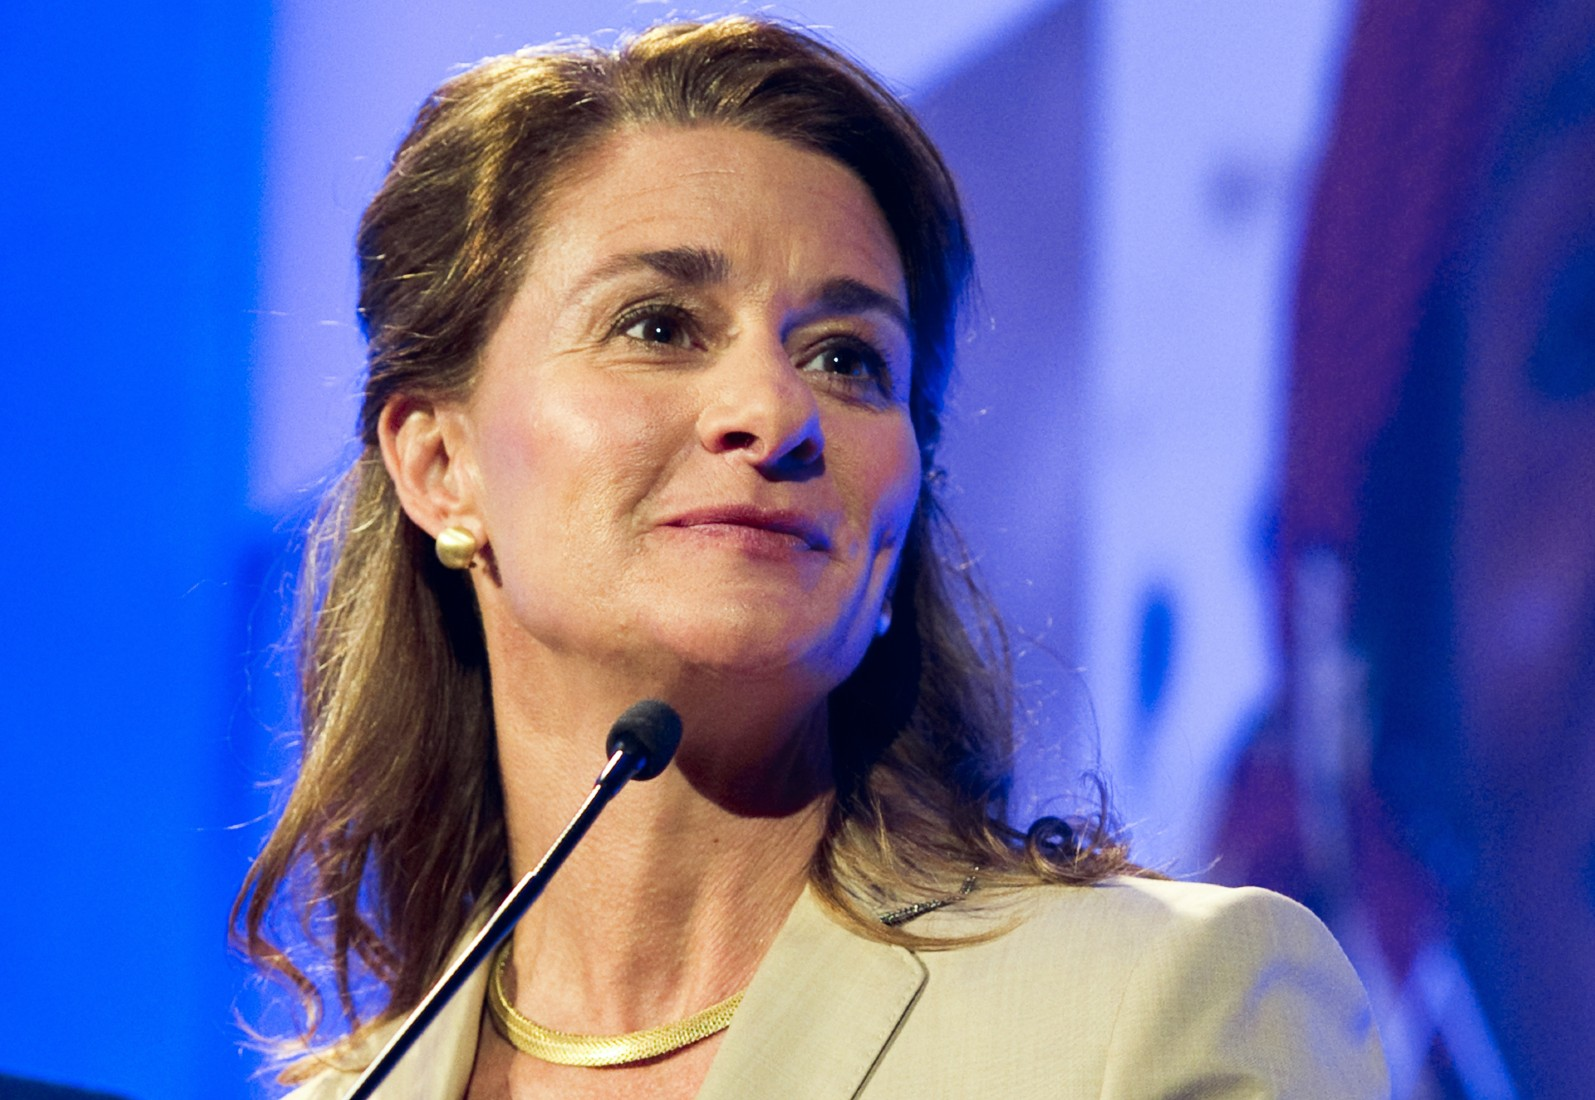 Open Letter To Melinda Gates - No COVID-19 Dead Bodies On African Streets